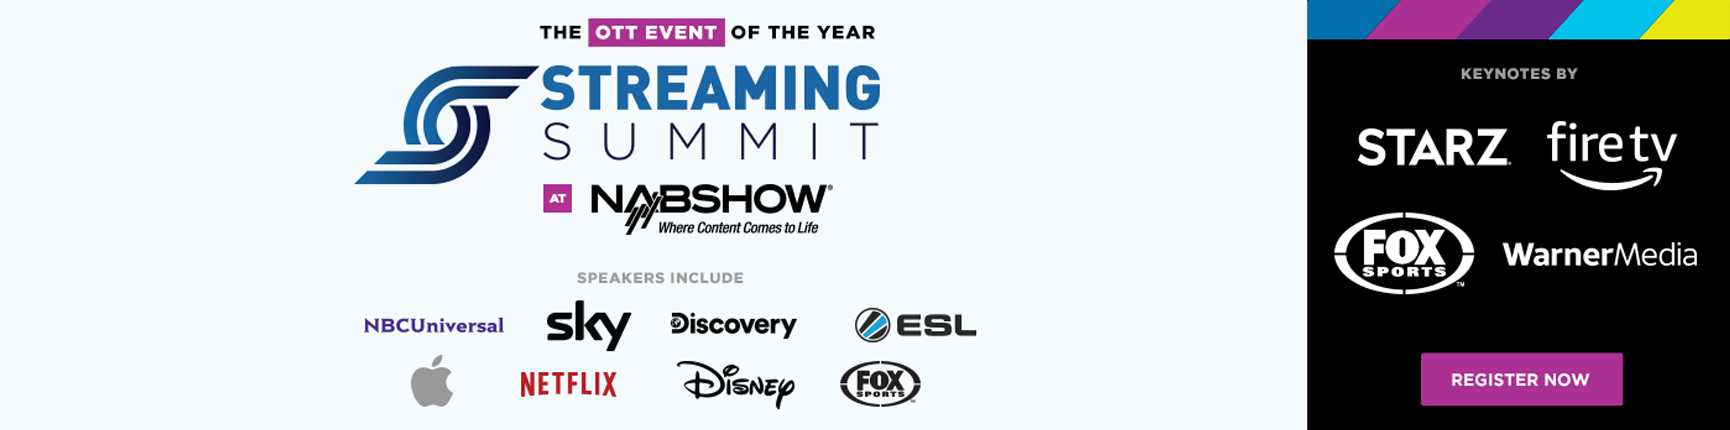 Streaming Summit